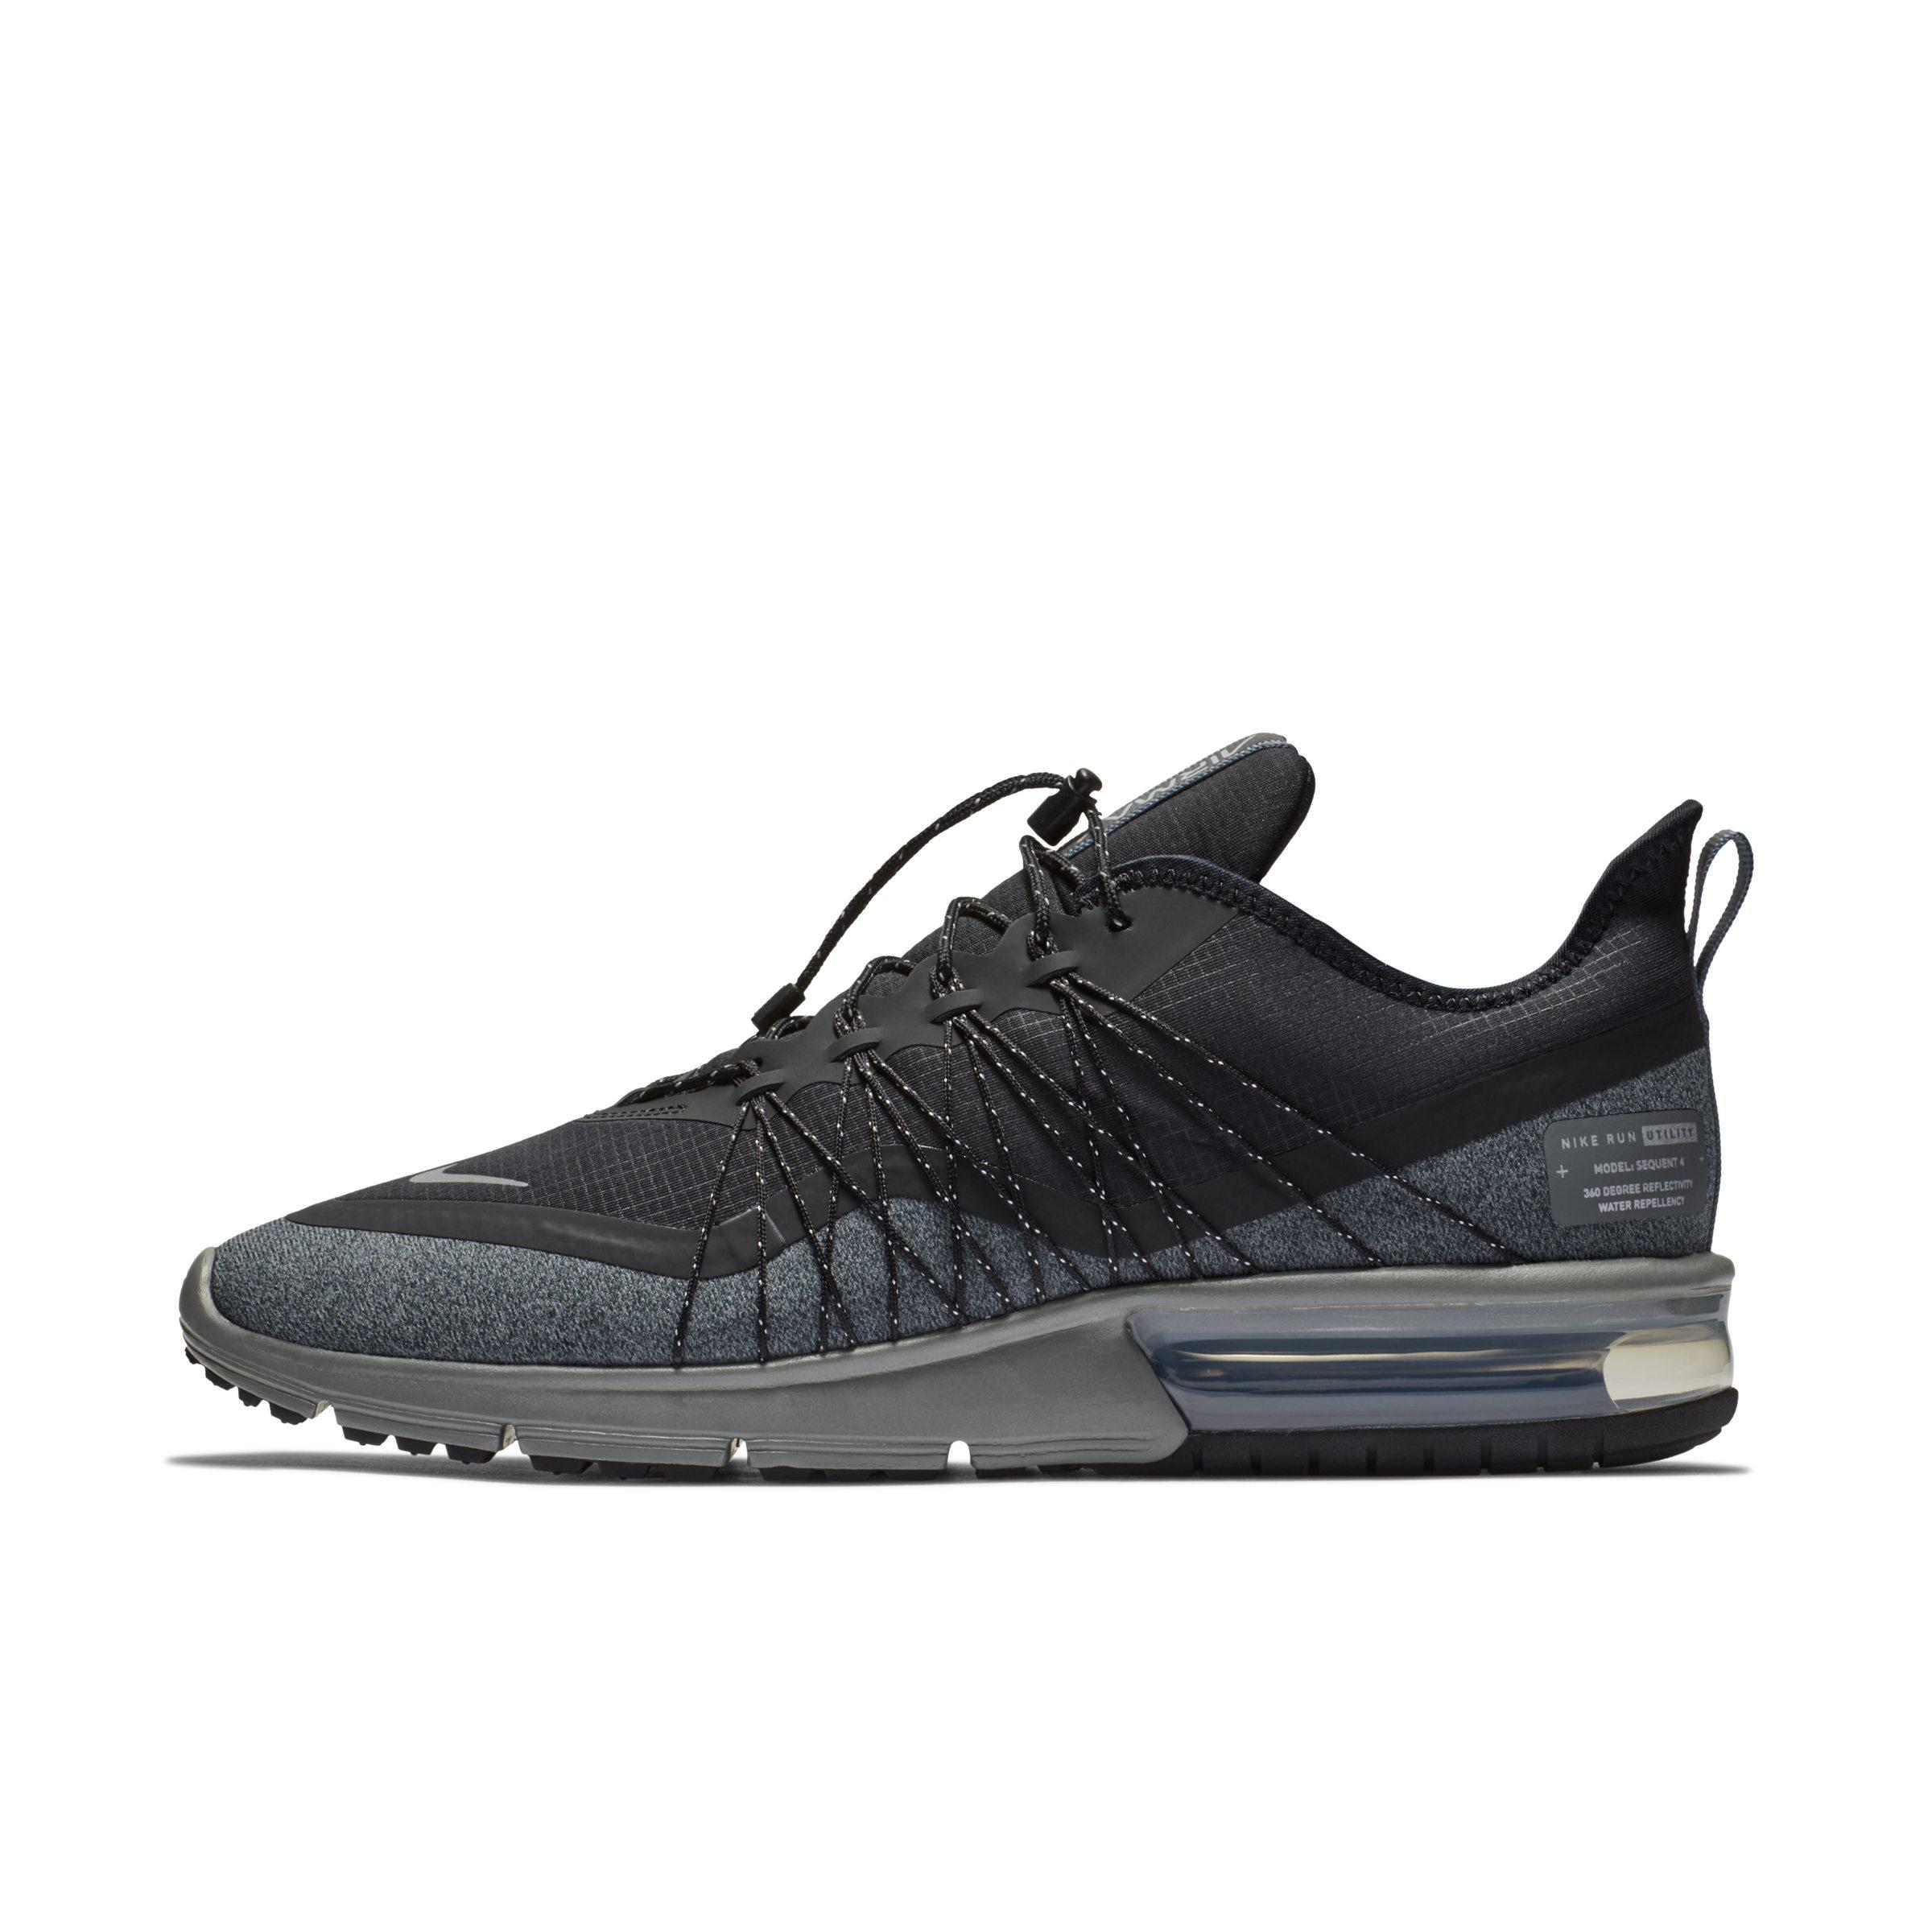 b0c0668d281 Nike Air Max Sequent 4 Shield Shoe in Black for Men - Lyst